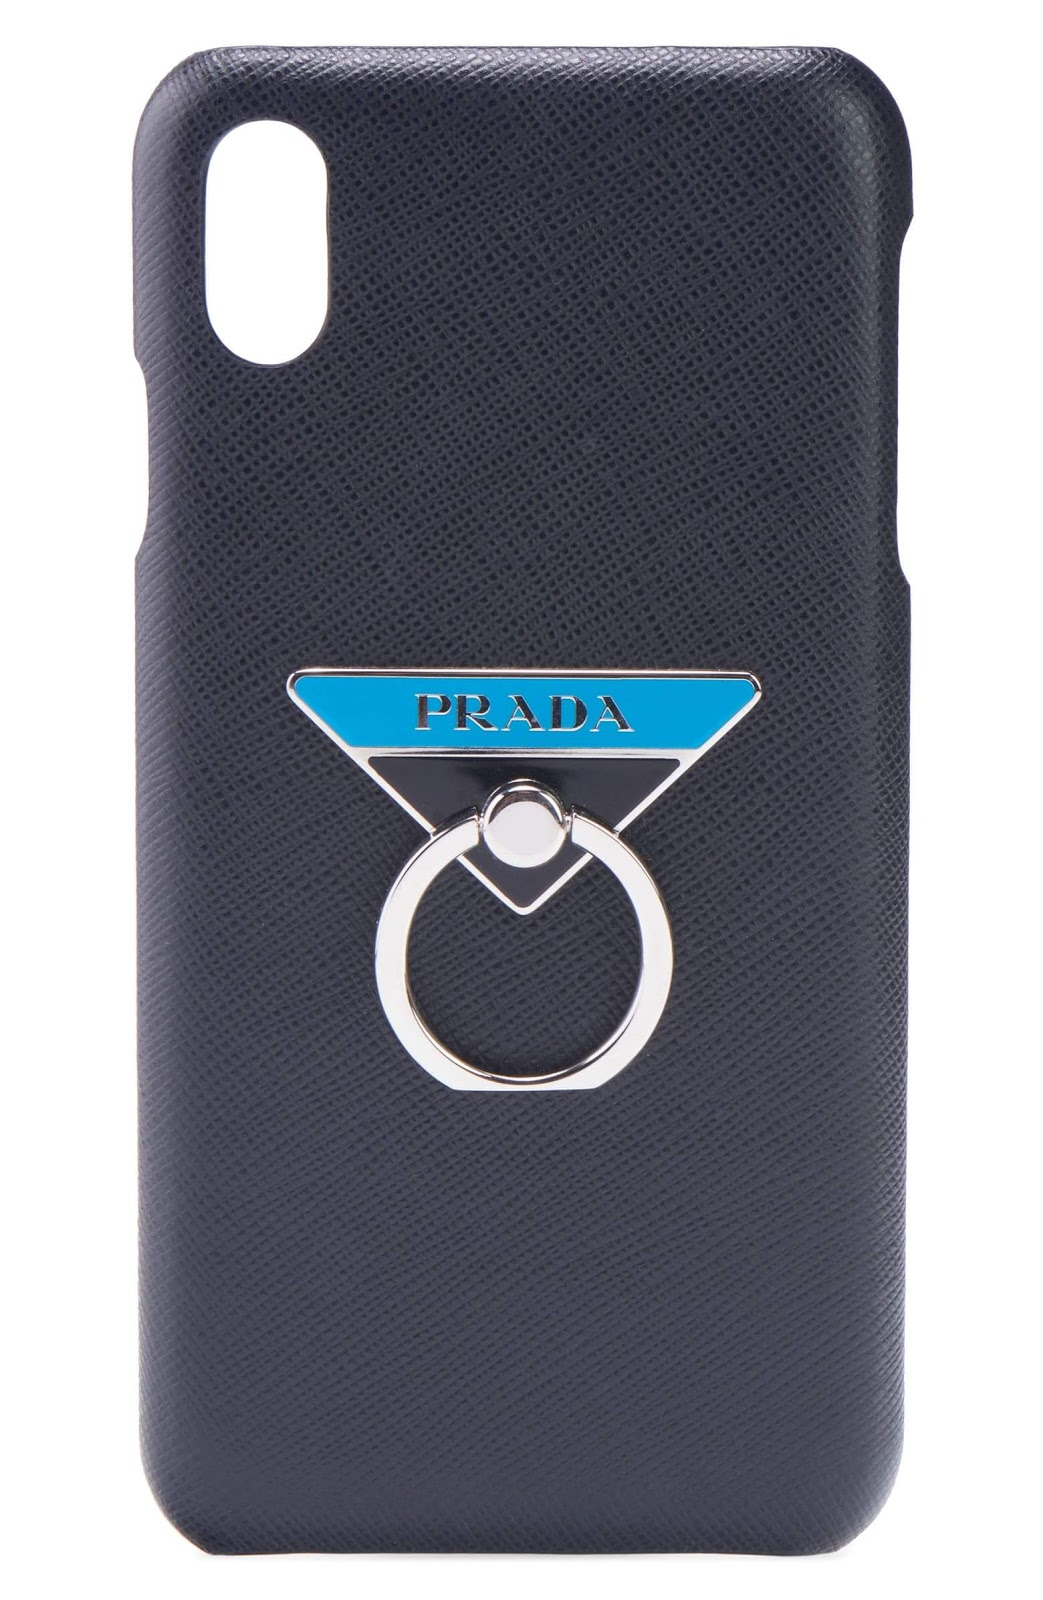 Black leather phone case with silver hardware ring